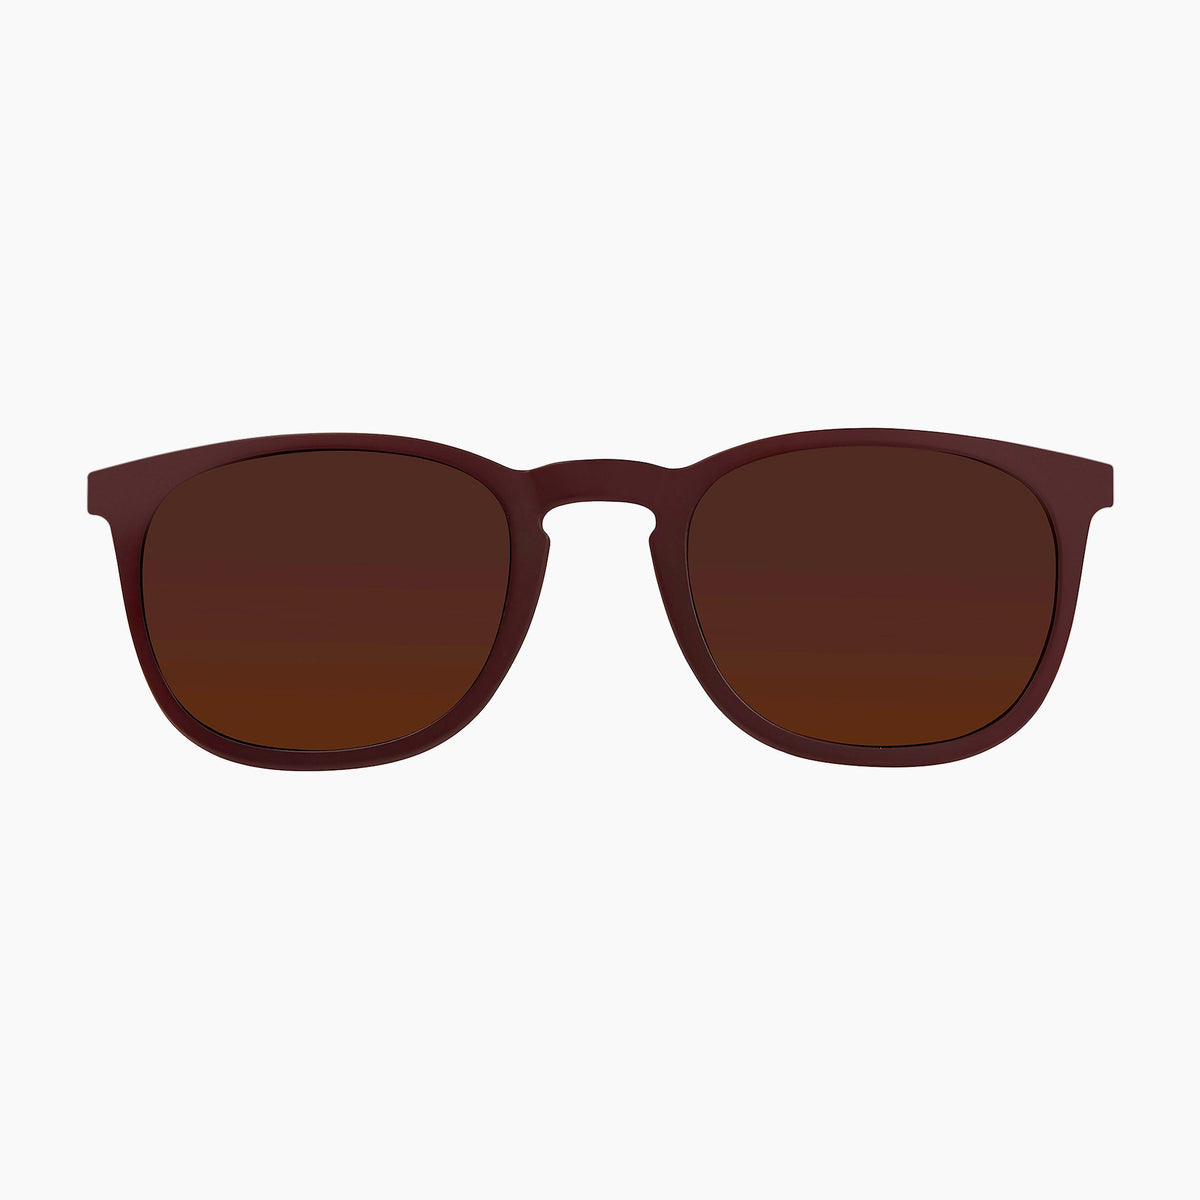 Burgundy / Solid Brown Lens